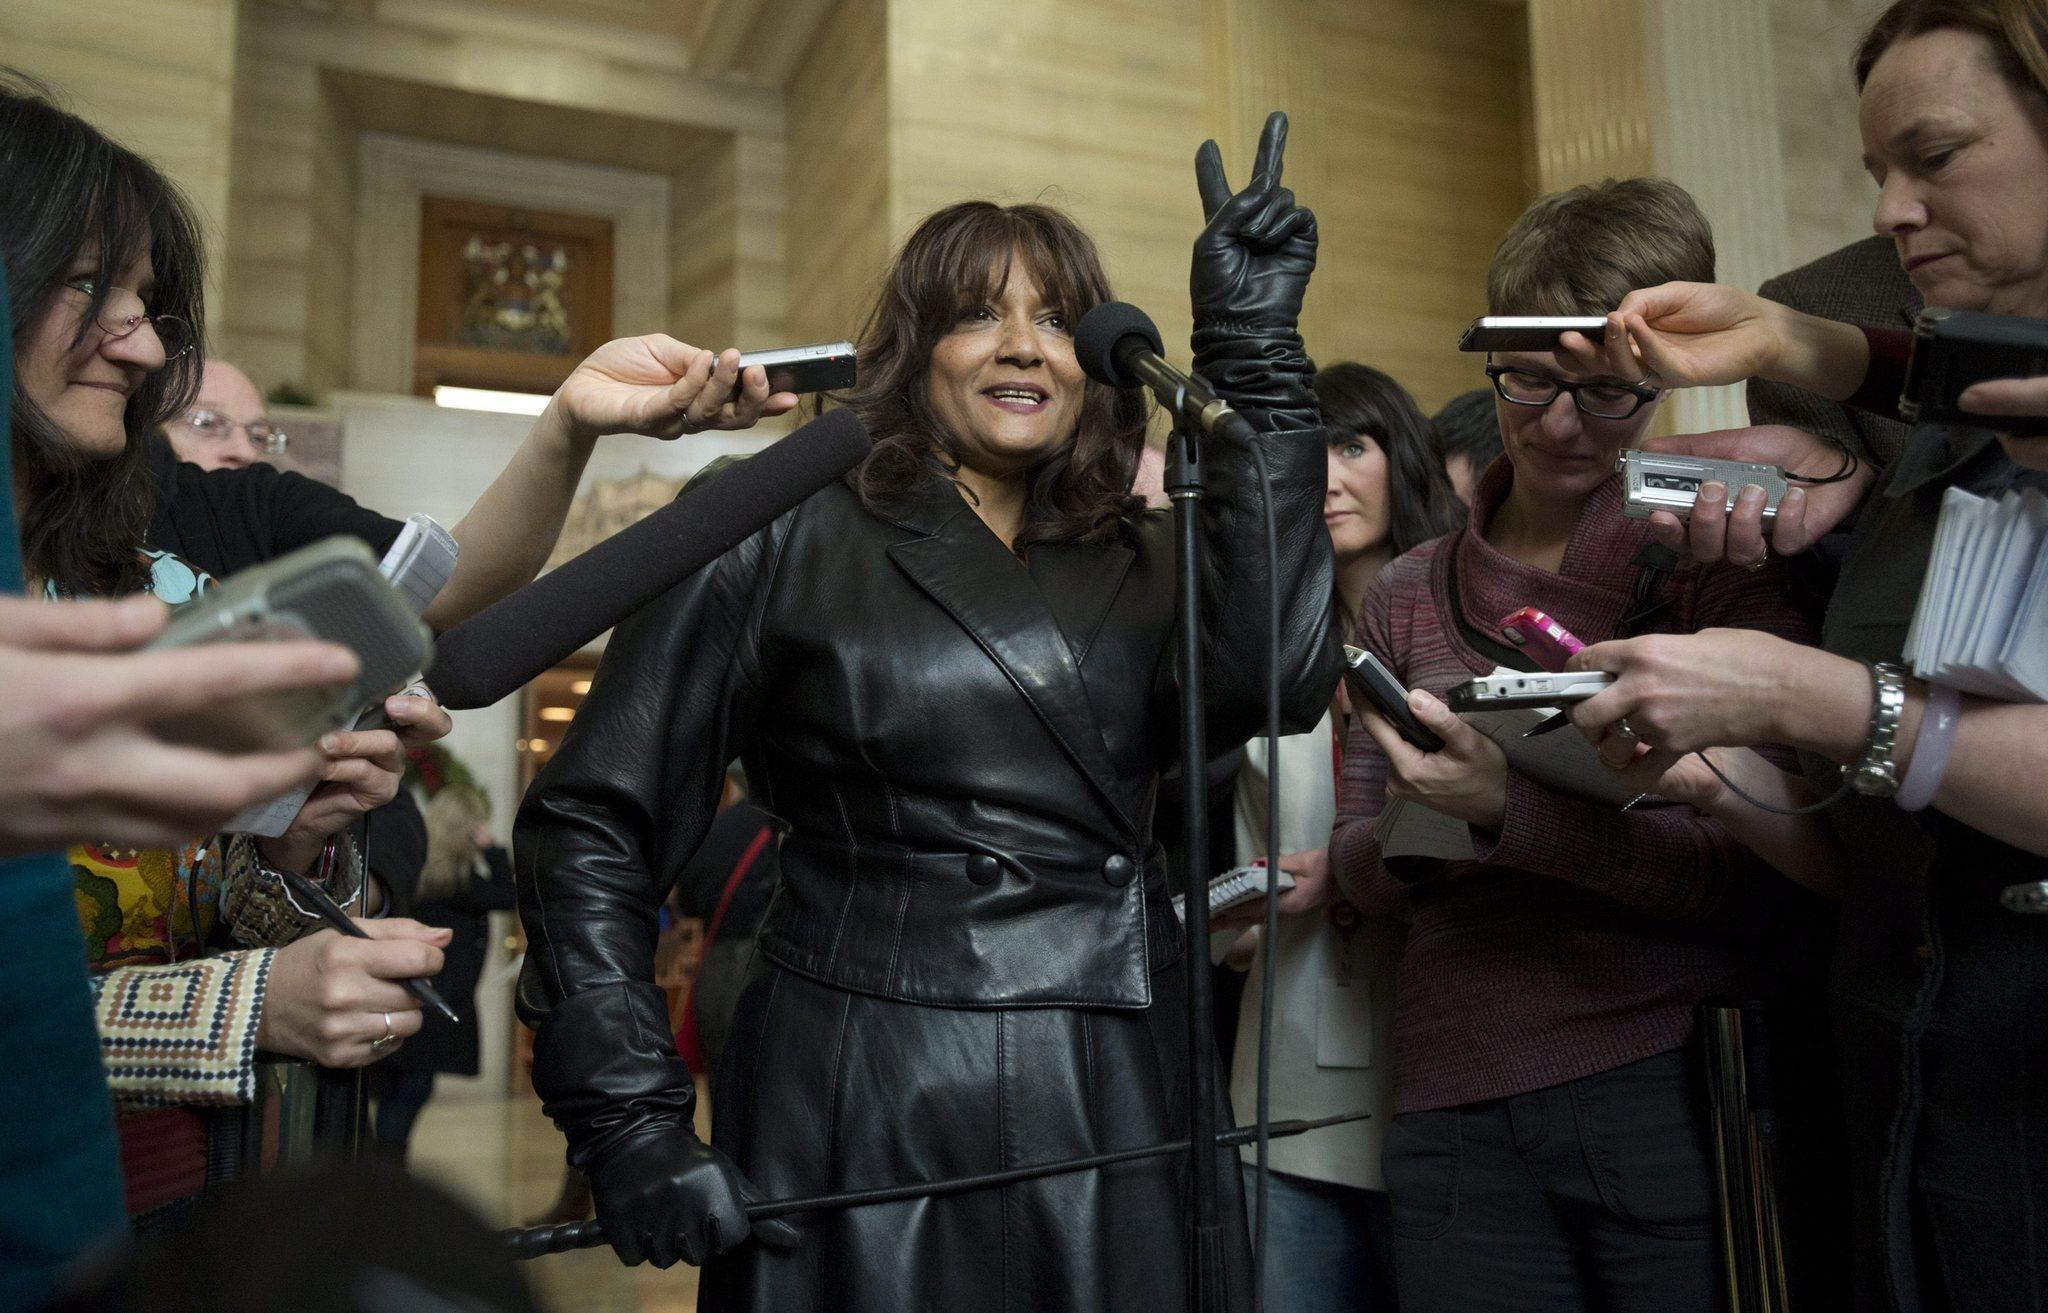 Terri Jean Bedford, in dominatrix garb, flashes a victory sign at the Supreme Court of Canada on Friday after the justices ruled unanimously to strike down laws against prostitution. Bedford and other sex workers argued that the laws constitute arbitrary discrimination and prevent them from practicing their trade safely.